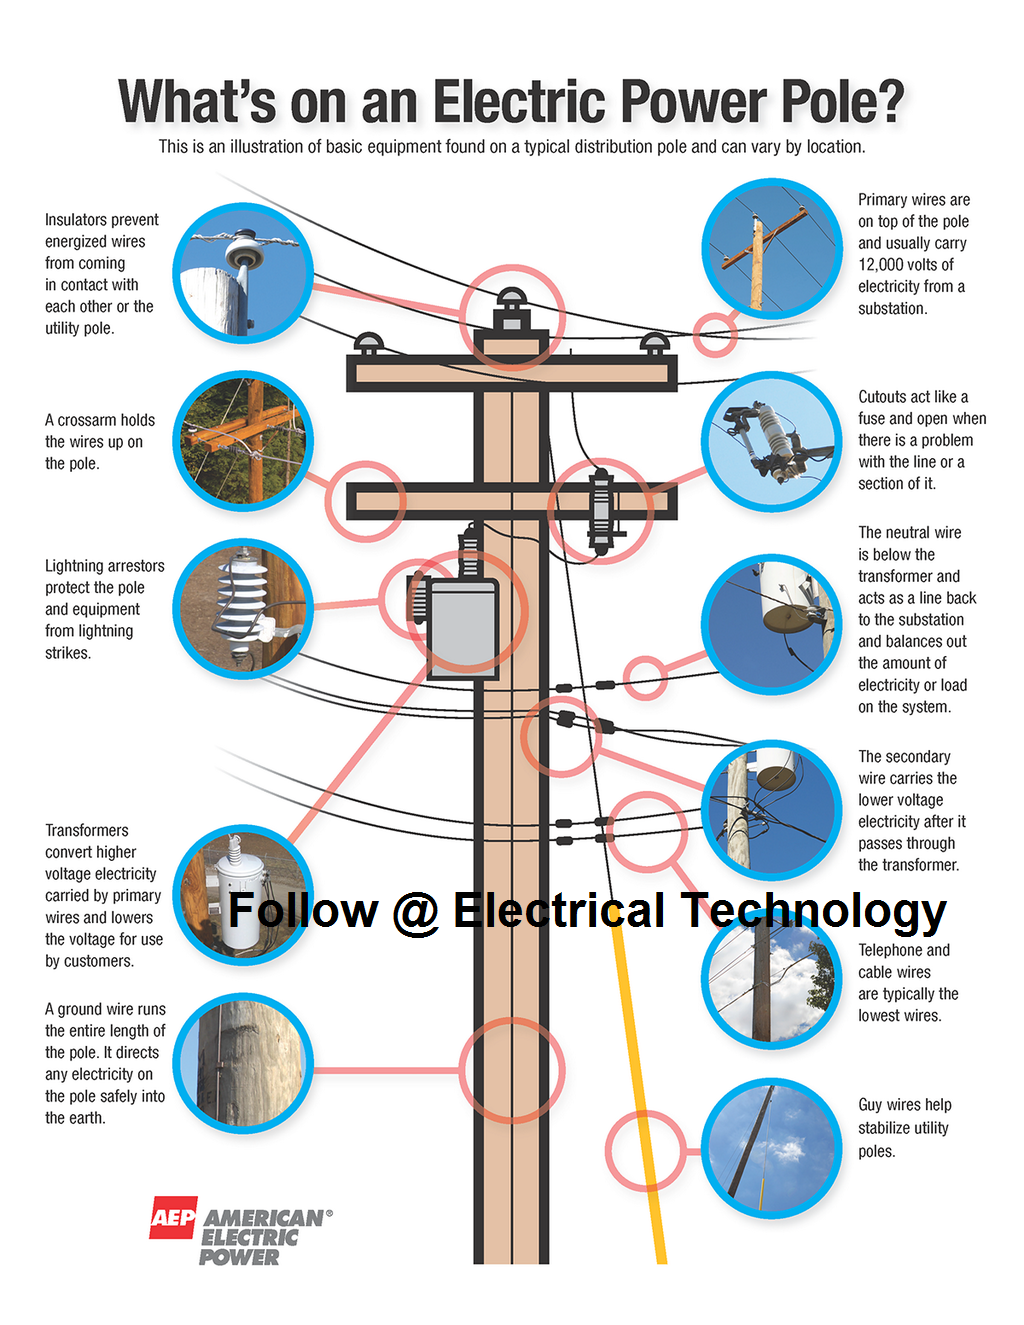 What is on an Electric Pole - Copy | Color and Design | Pinterest ...